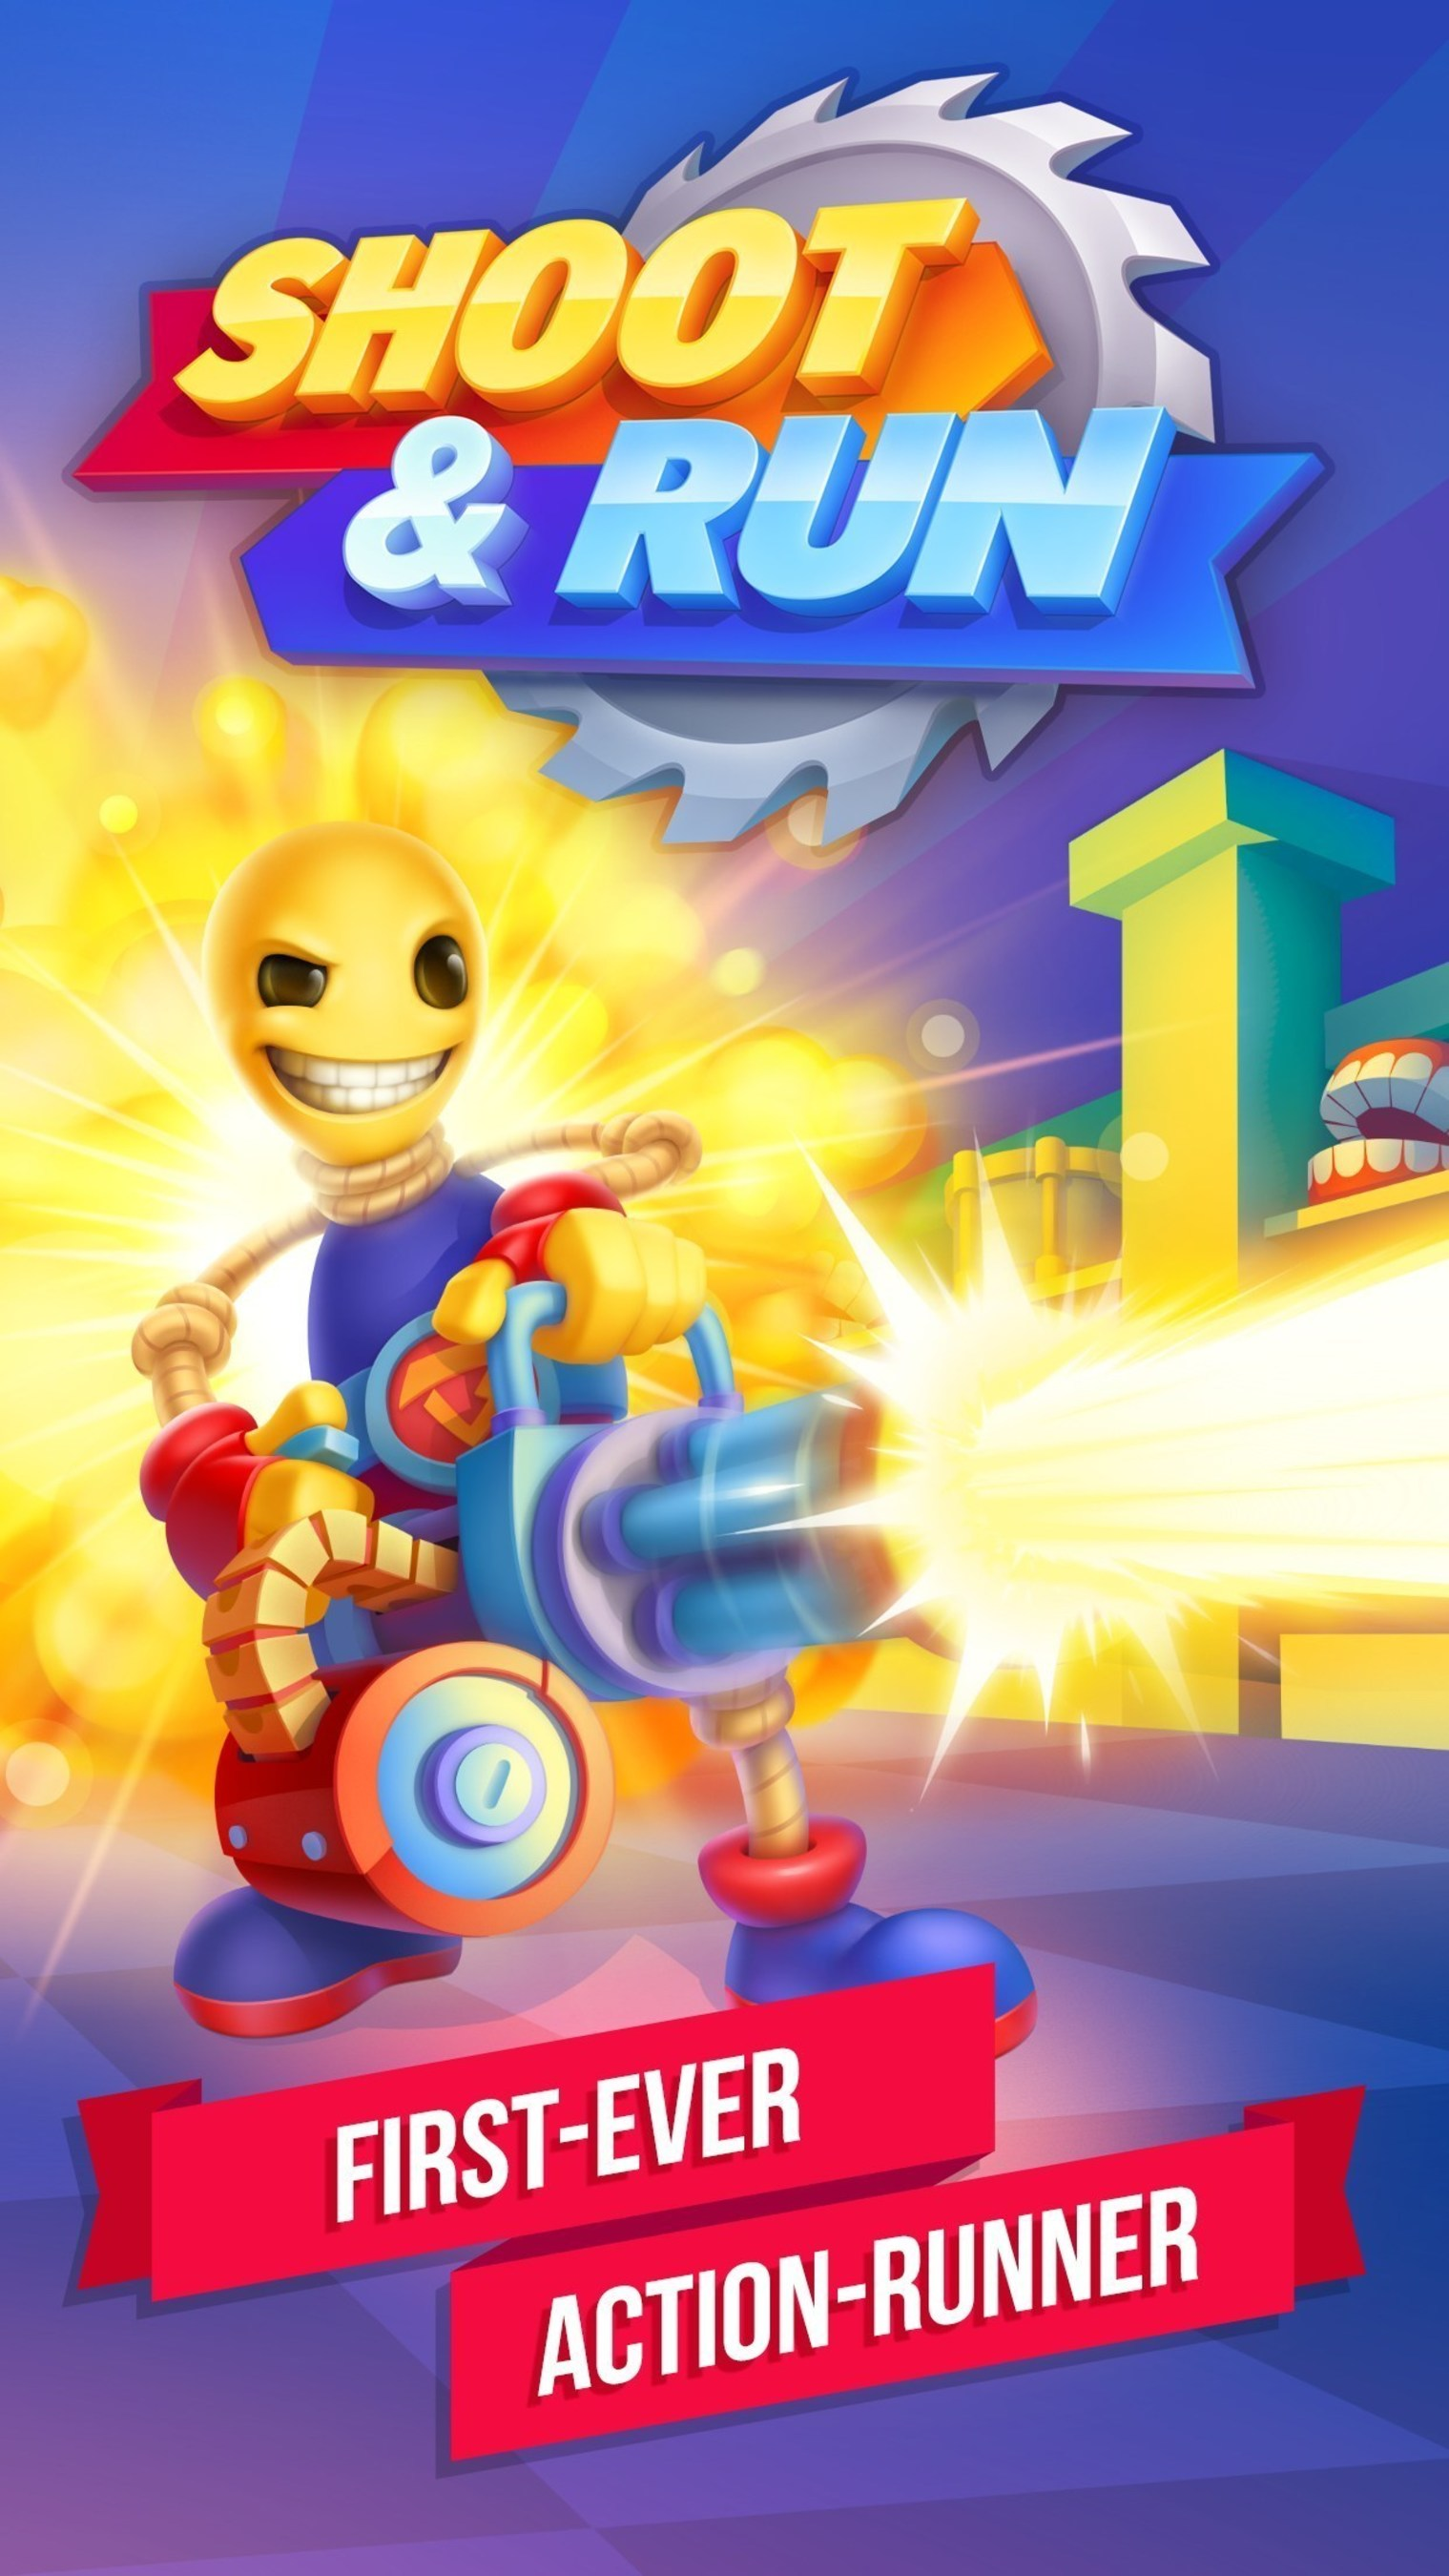 iDreamSky announced today that the company is going to publish a brand new title, Buddyman: Shoot and Run, the ...